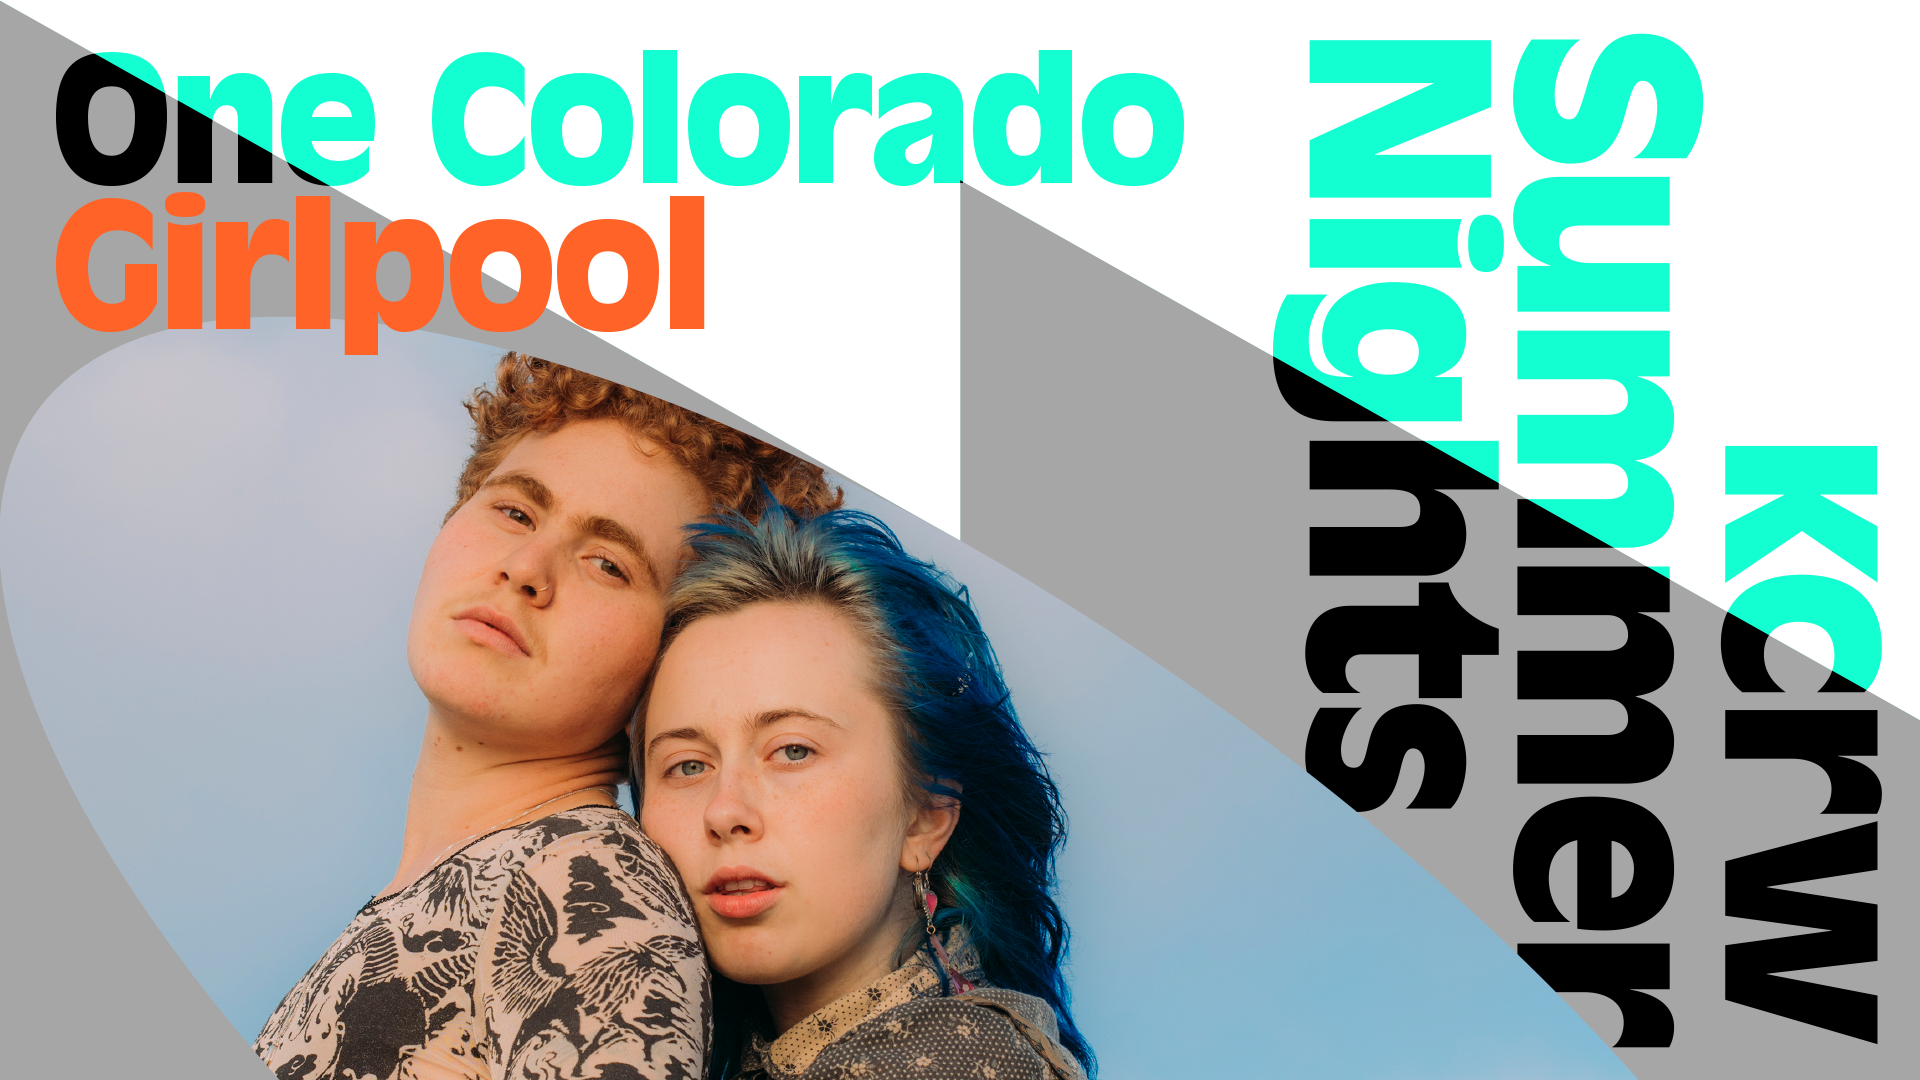 Girlpool at KCRW Summer Nights Sat Jun 15 @ 7:30pm